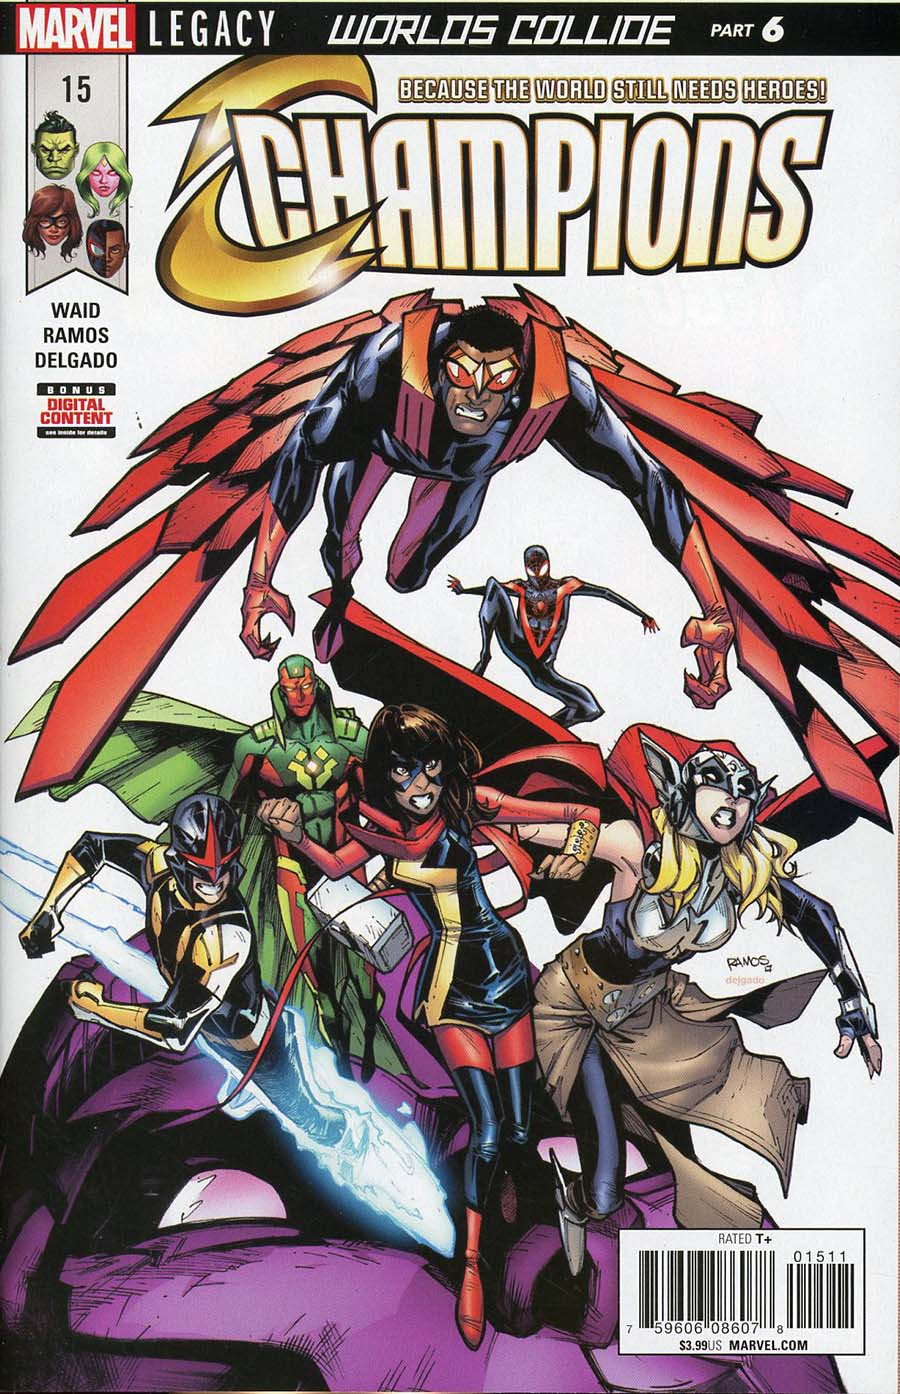 Champions (Marvel) Vol 2 #15 Cover A Regular Humberto Ramos Cover (Worlds Collide Part 6)(Marvel Legacy Tie-In)